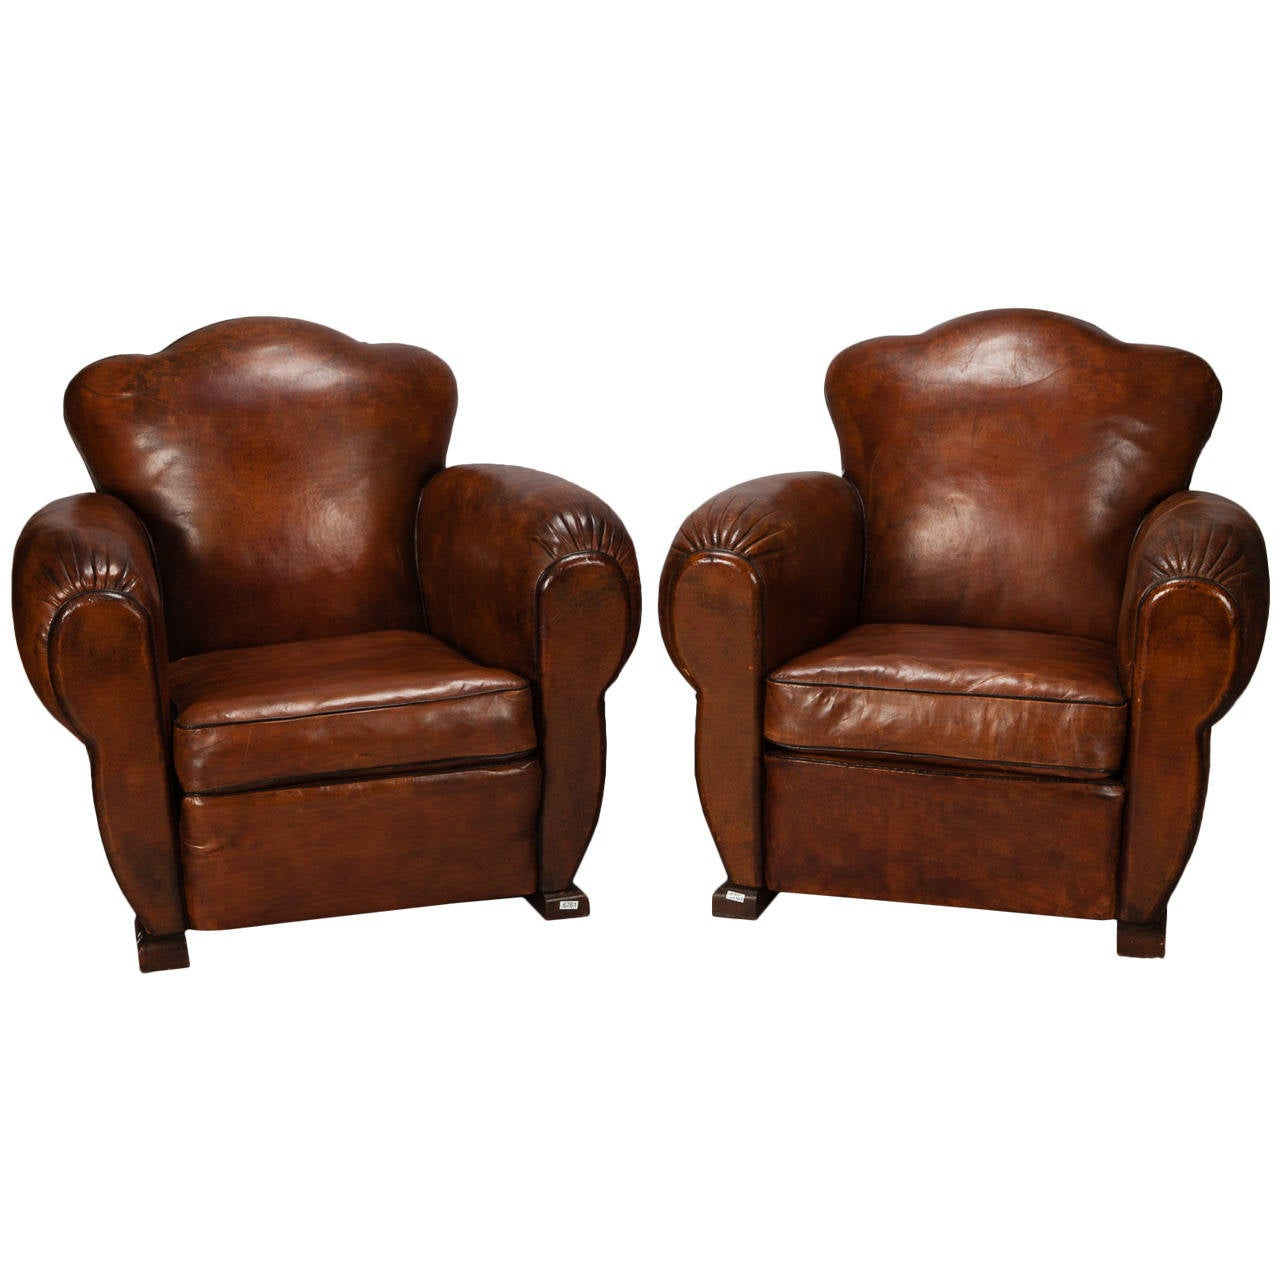 Pair of French Art Deco Leather Club Chairs with Camel